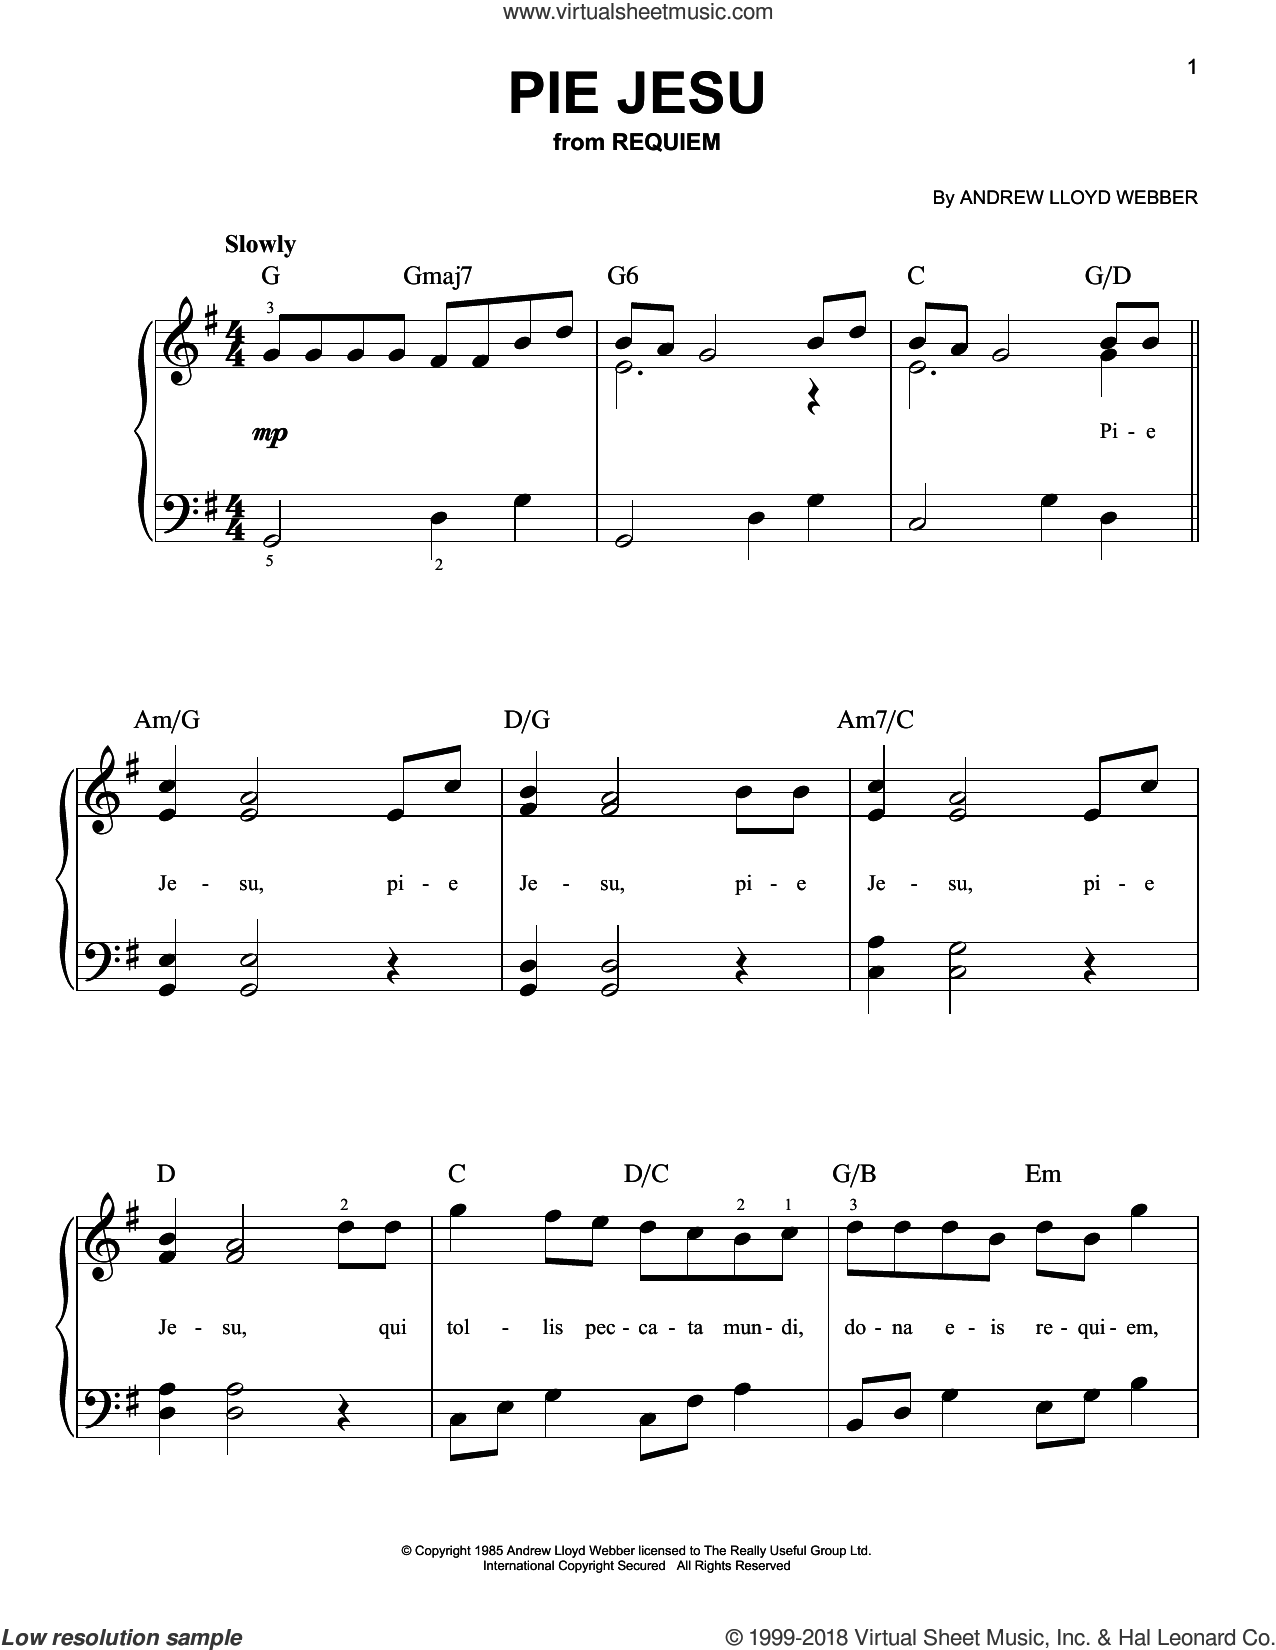 Pie Jesu sheet music for piano solo (chords) by Andrew Lloyd Webber